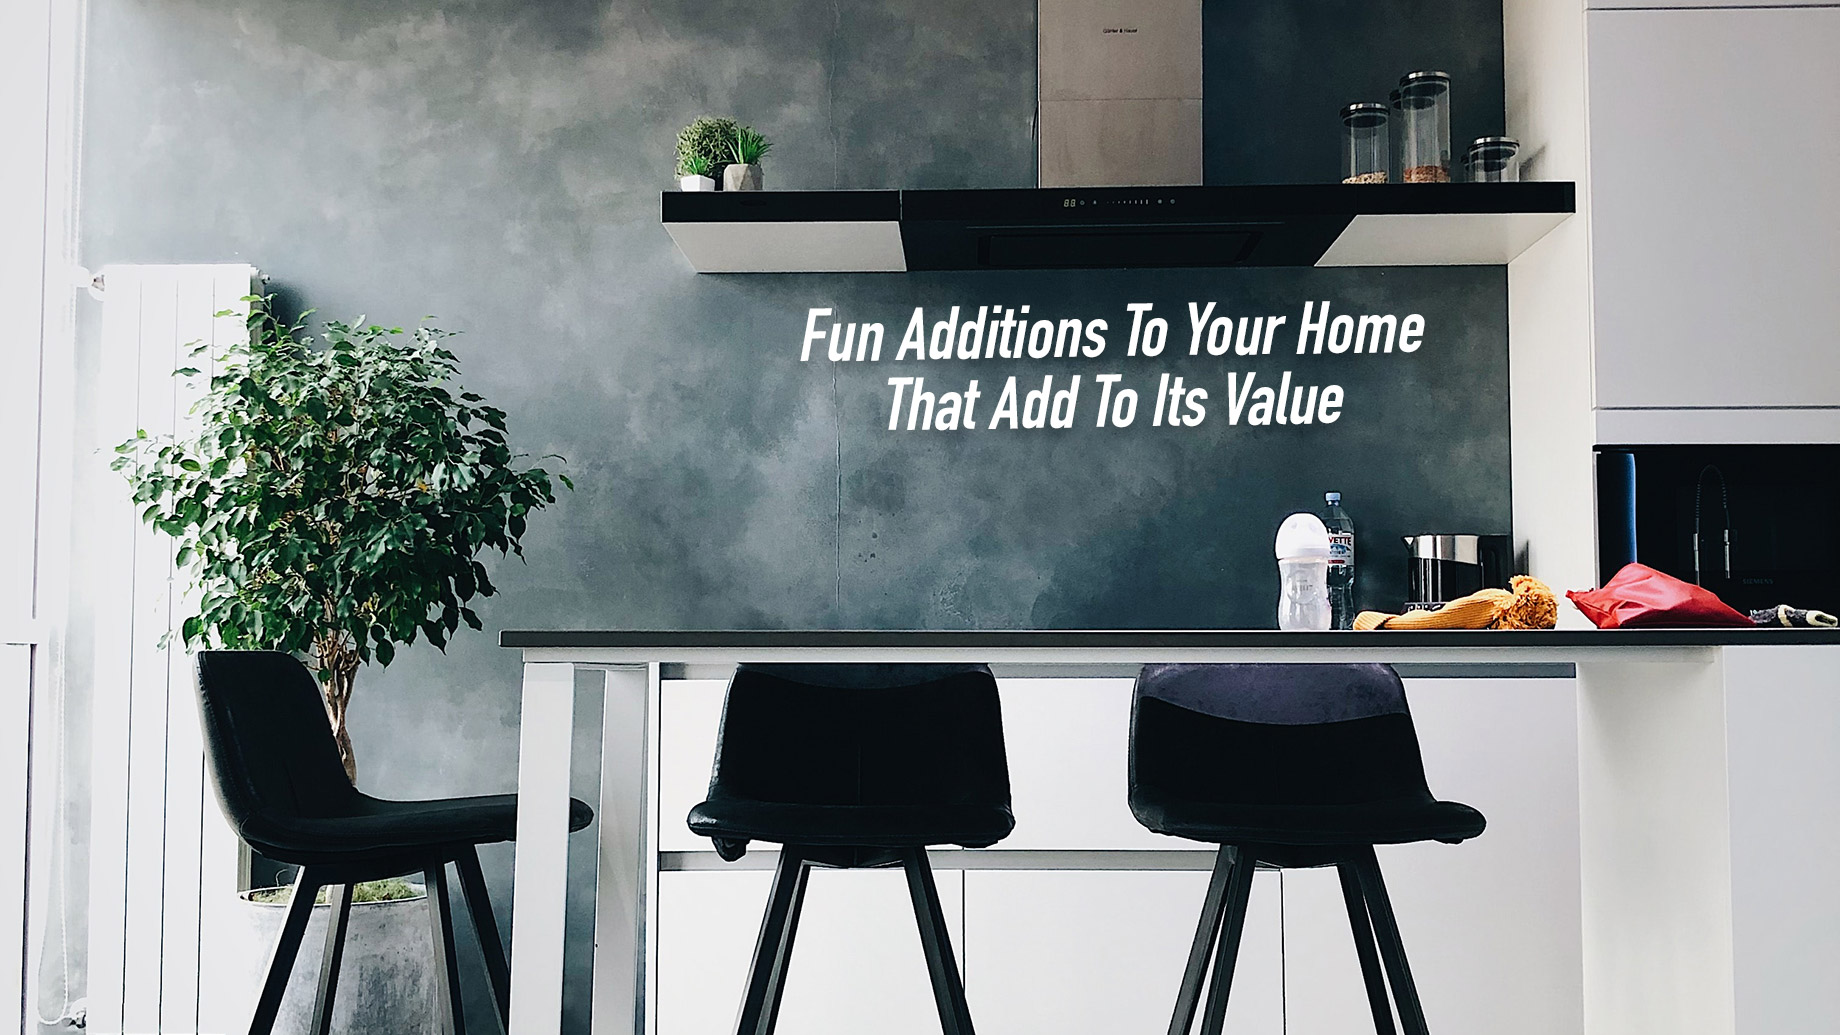 Fun Additions To Your Home That Add To Its Value